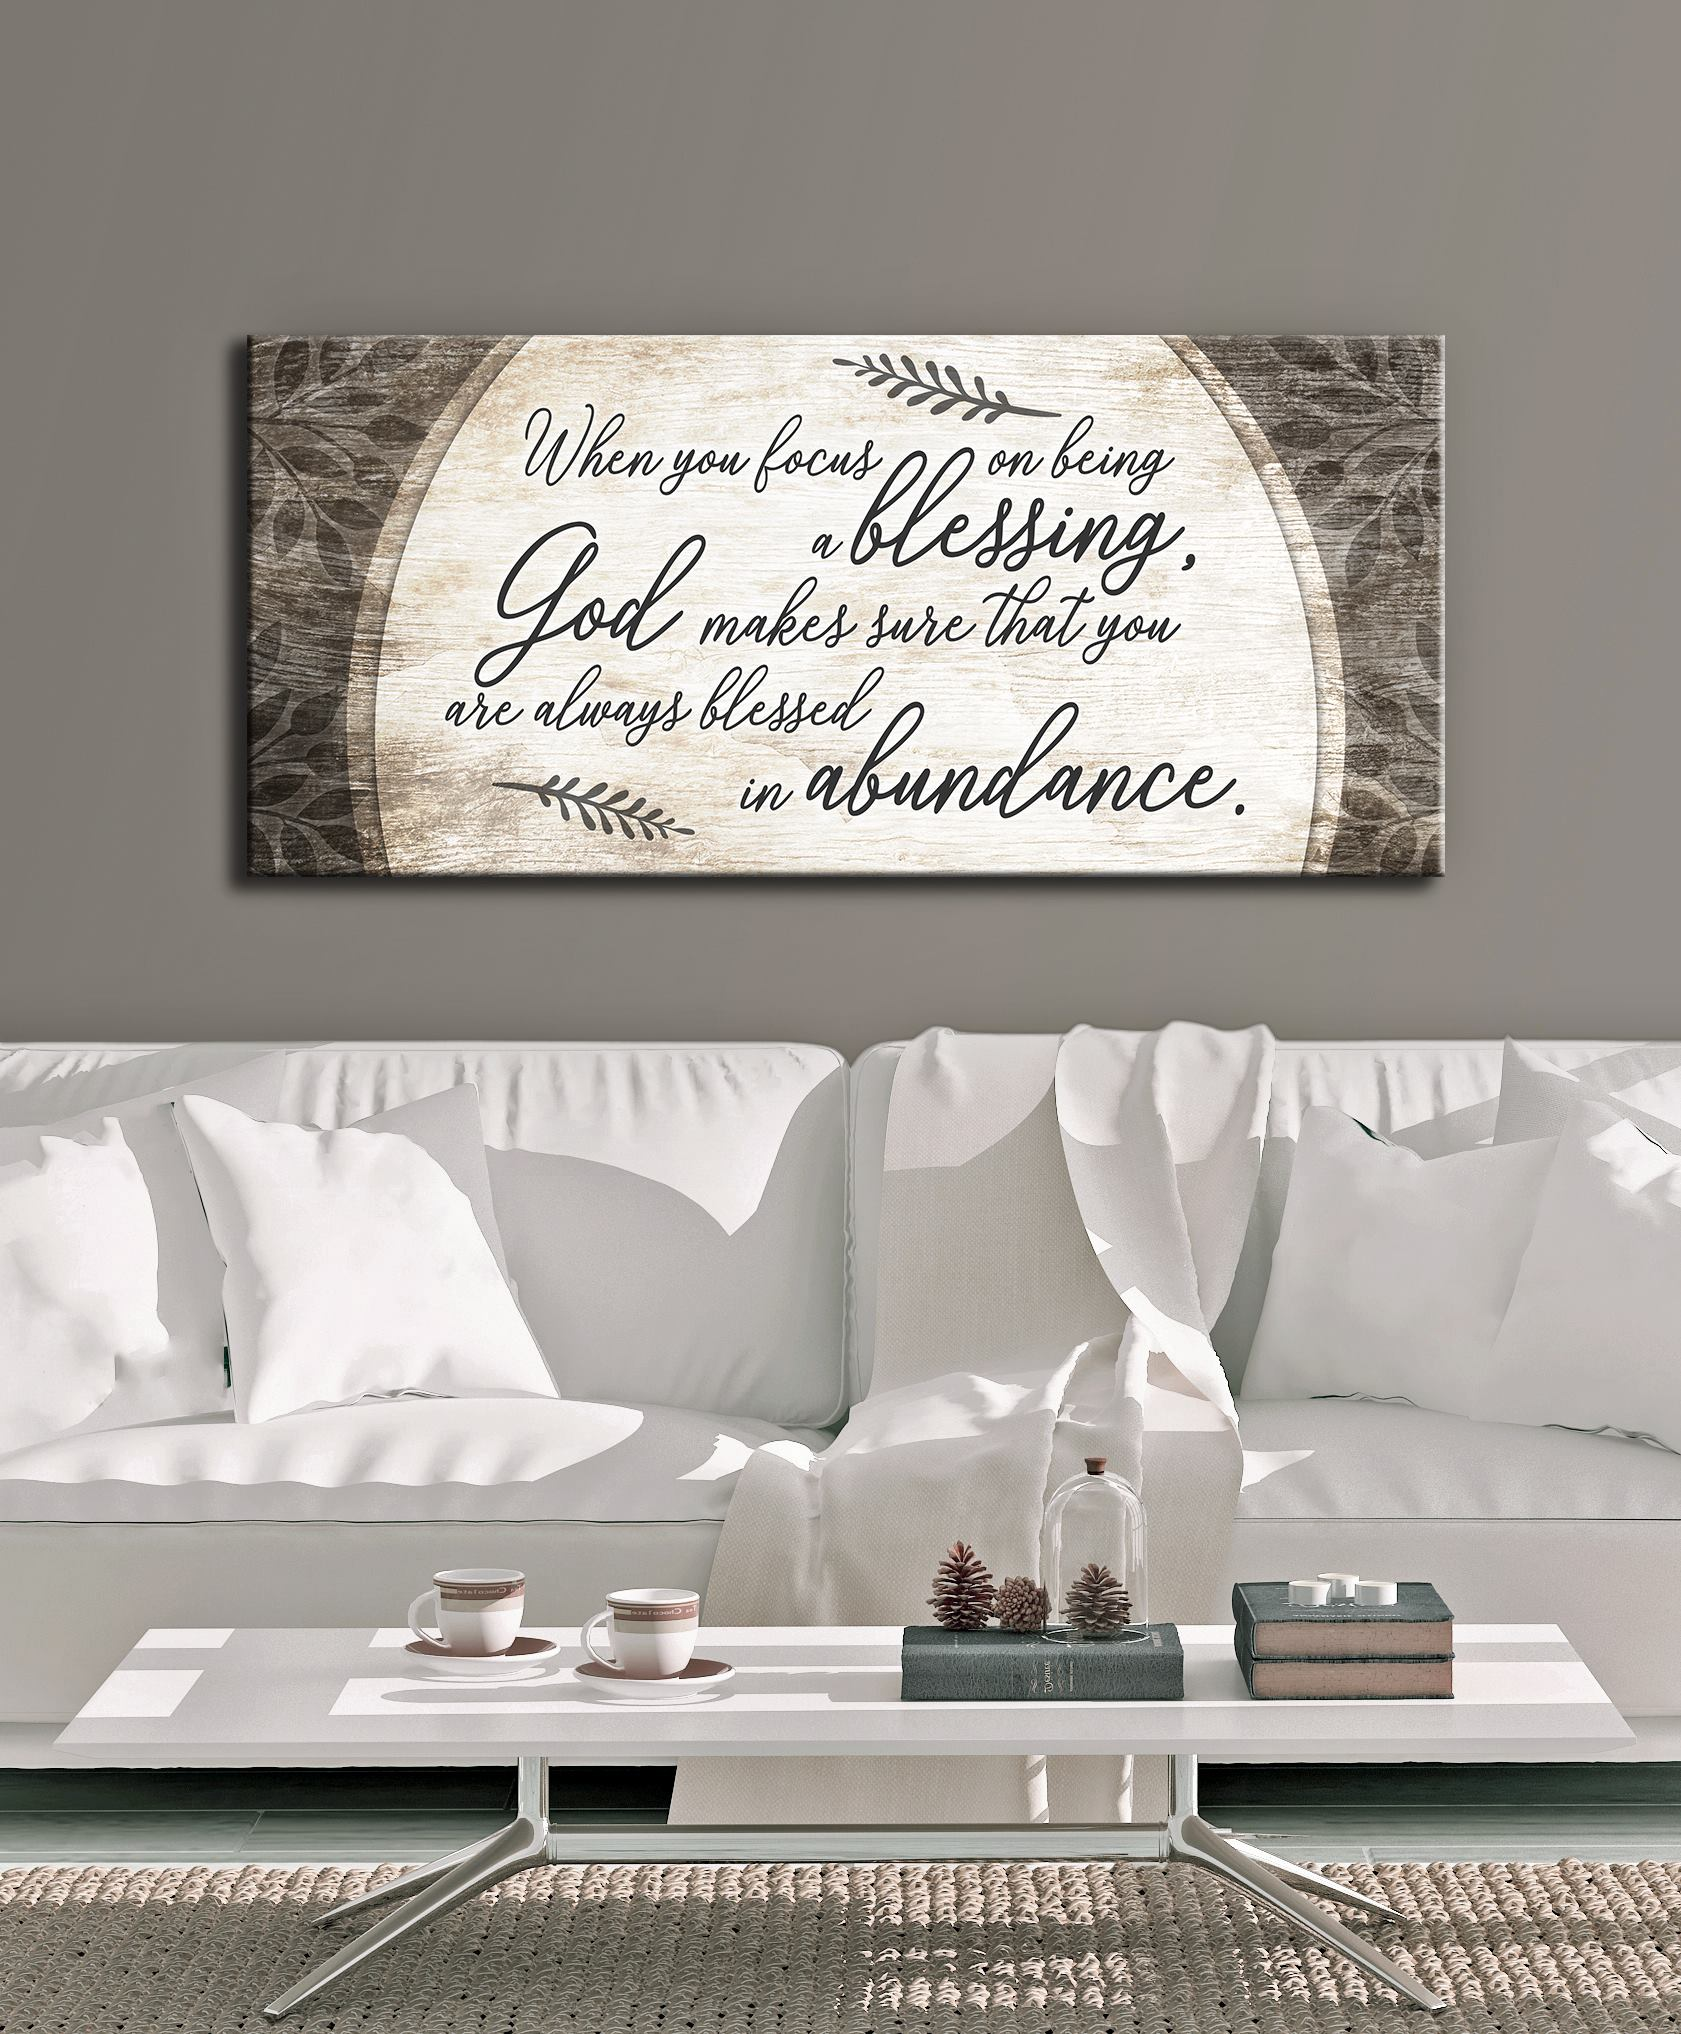 Christian Wall Art When You Focus On Being A Blessing Wood Frame Ready To Hang